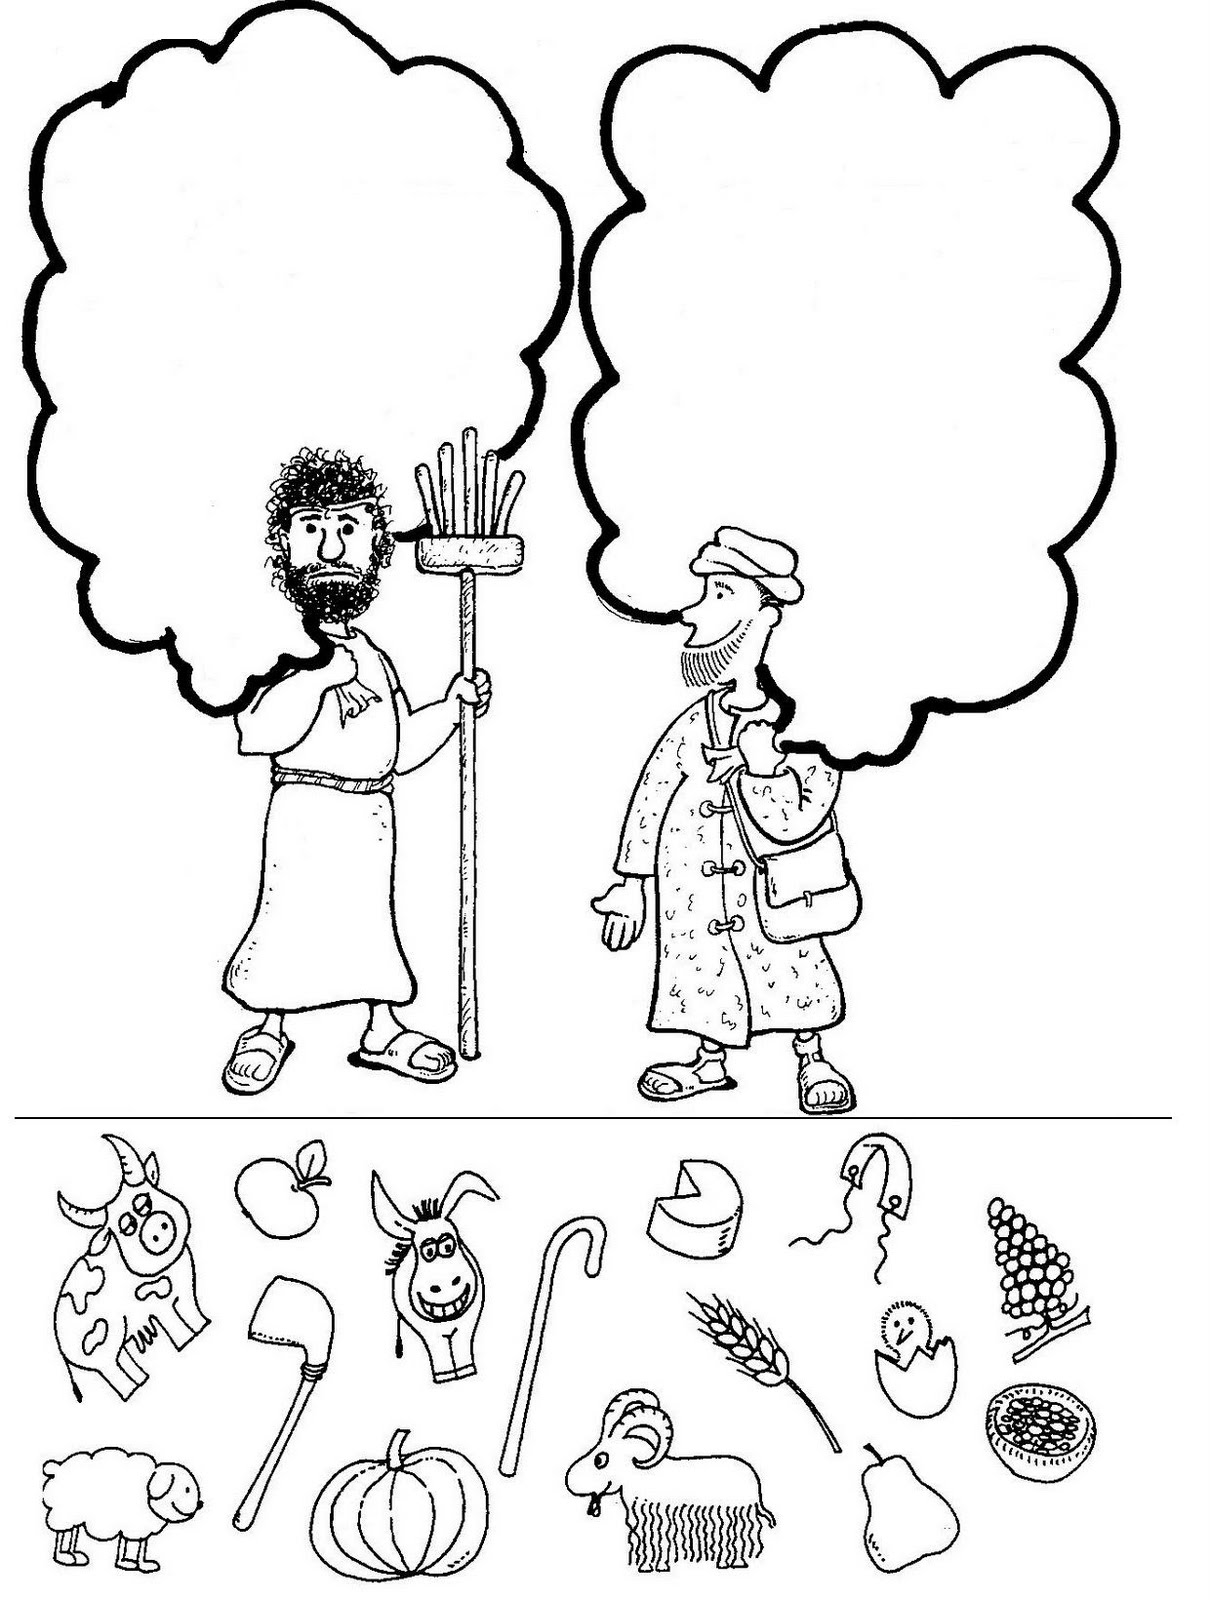 cain and abel coloring pages - Bible Coloring Pages Cain Abel